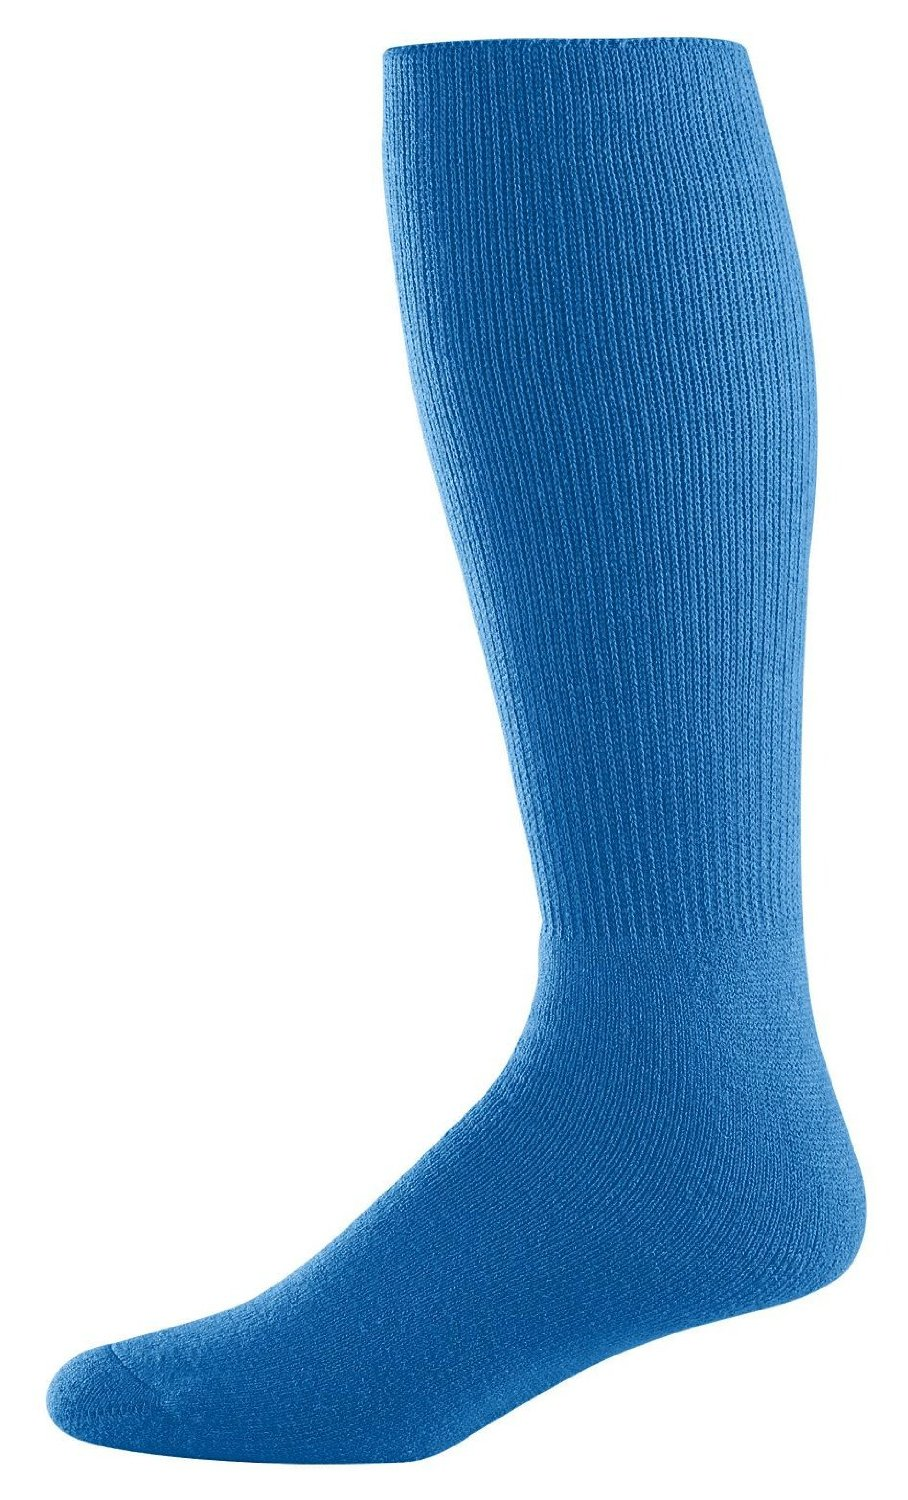 Athletic Socks - Youth Size 7-9, Color: Royal, Size: 7 - 9